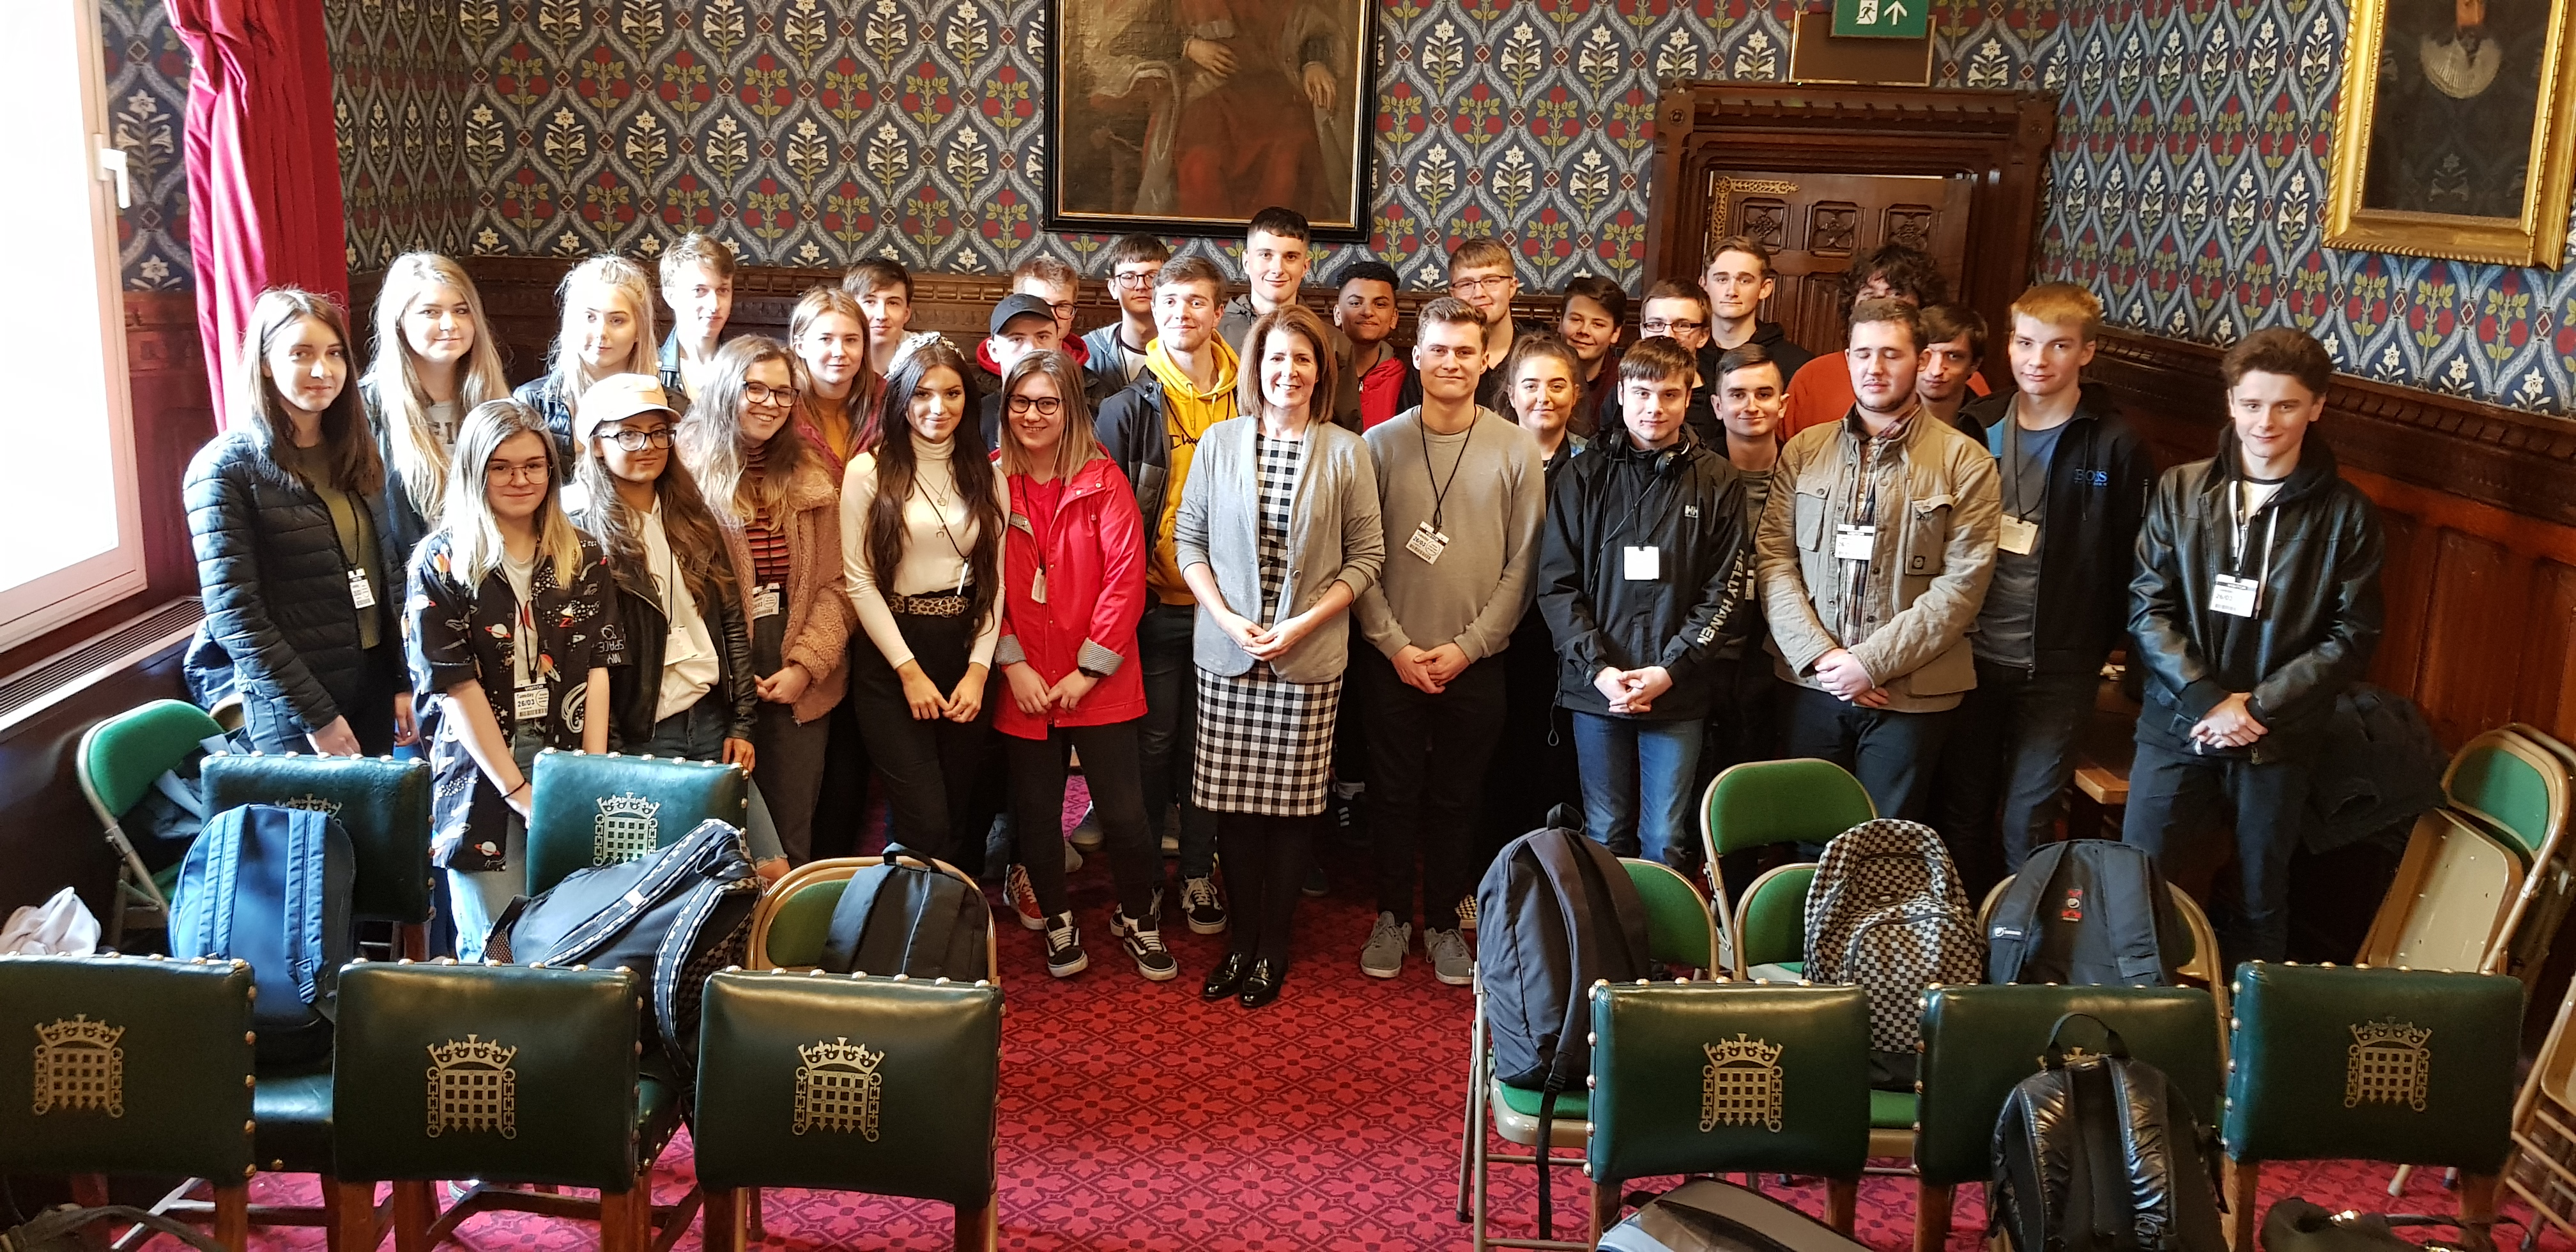 Politics students pose questions in Parliament